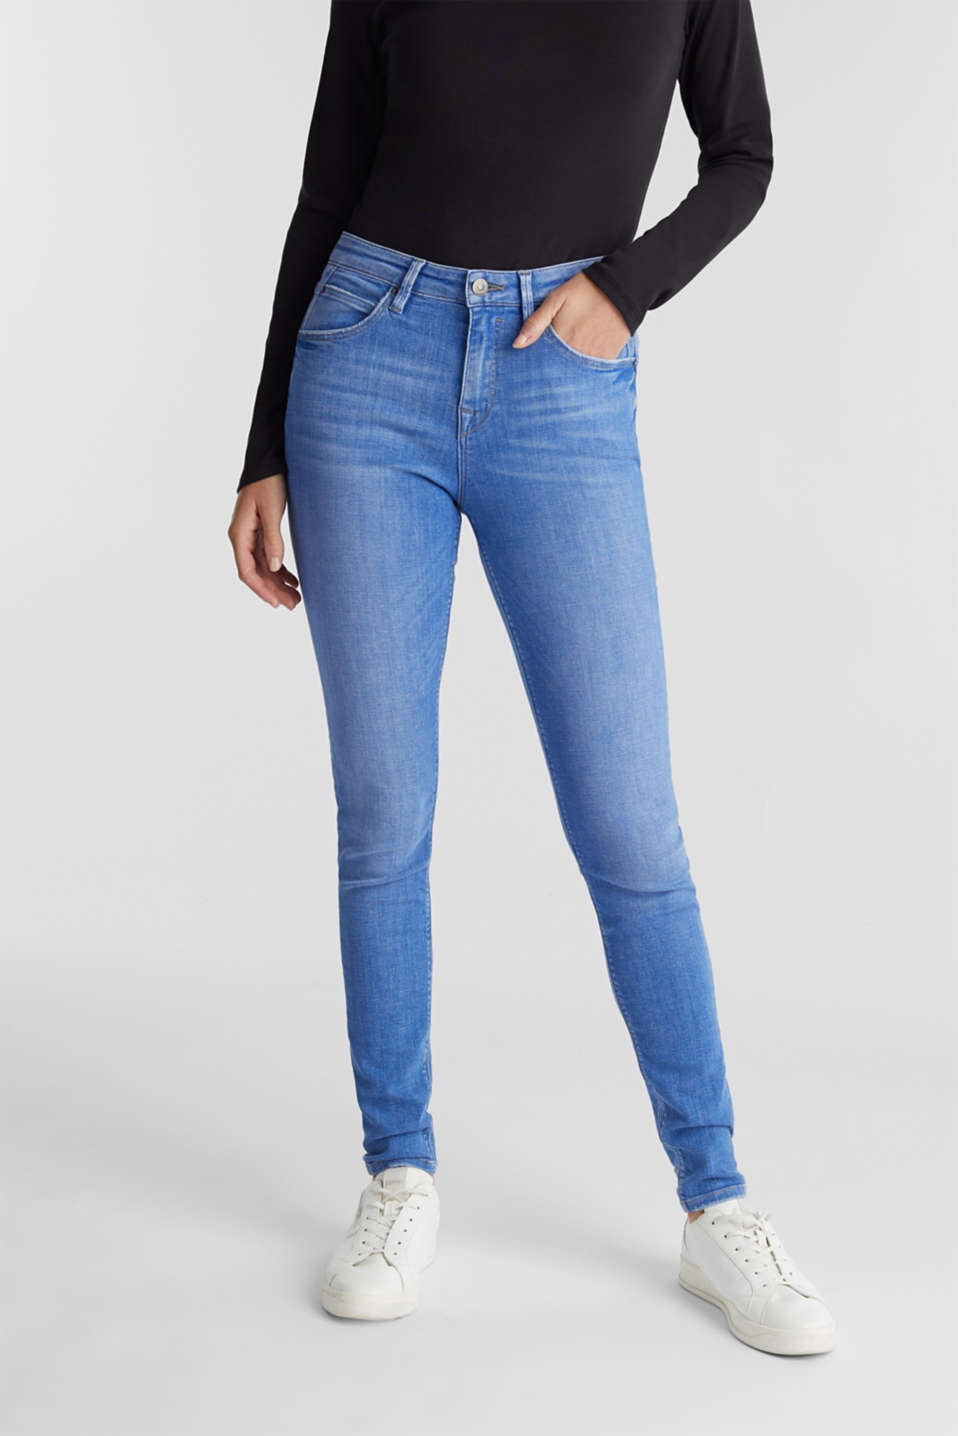 edc - Stretch jeans containing organic cotton